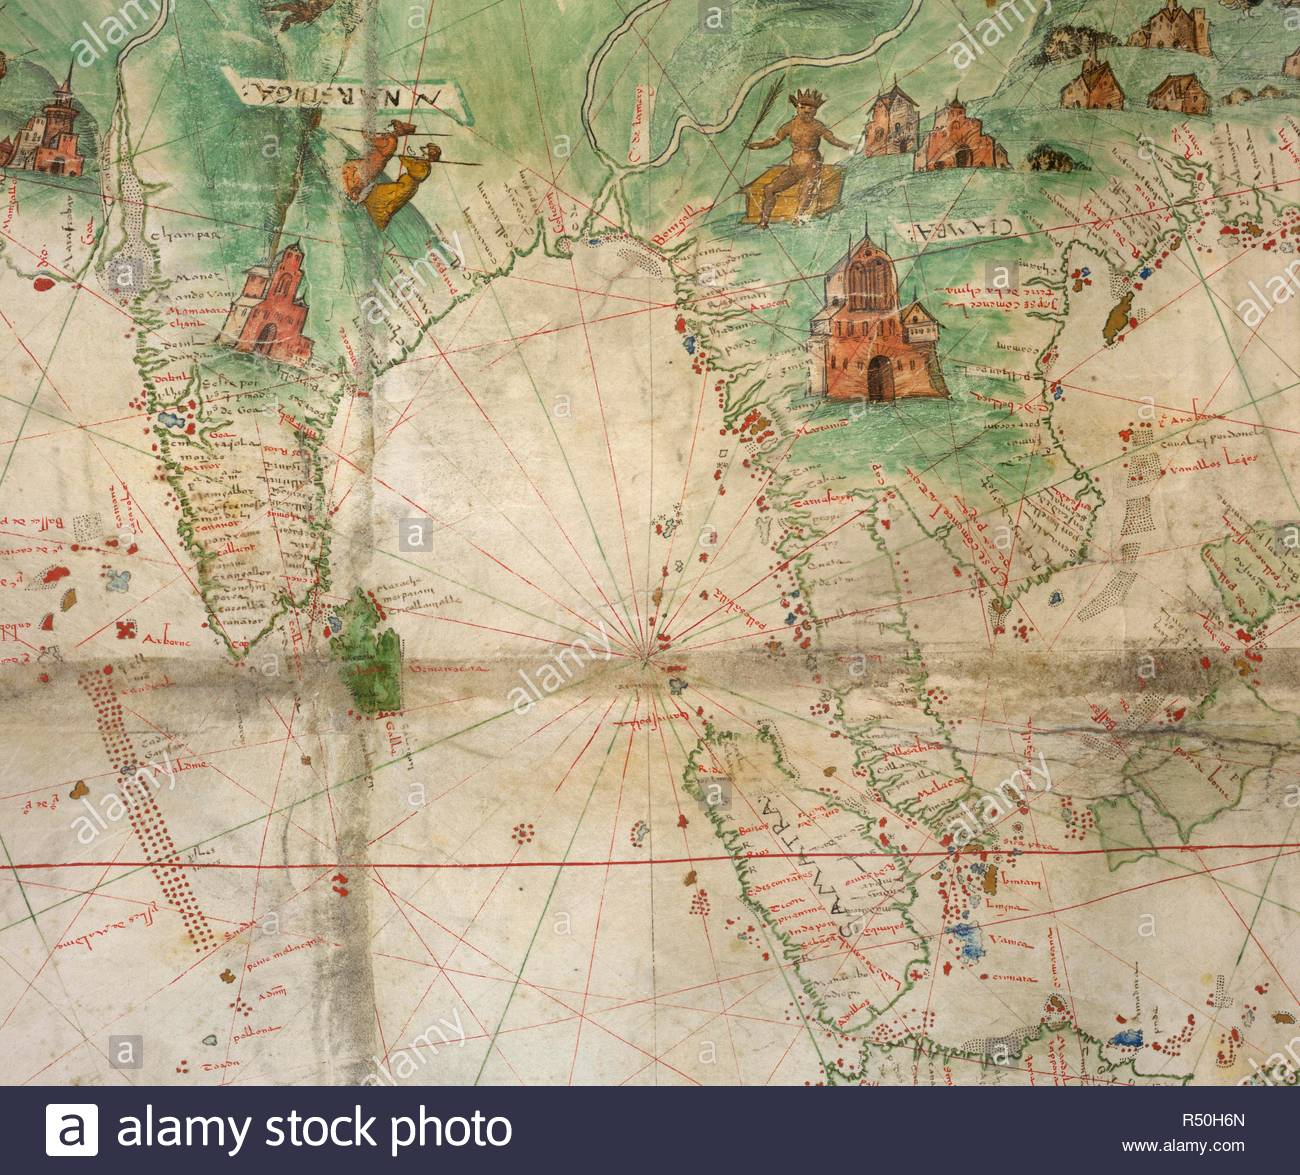 [Detail of map] India and the Bay of Bengal to the Malay Peninsula, Indonesia, and the South China Sea. Produced for the Dauphin [Henri II]. Dauphin Map [Harley World Map]. France; 1547. prester john,king, . Source: Add. 5413,. Language: French. Author: Dieppe School. - Stock Image